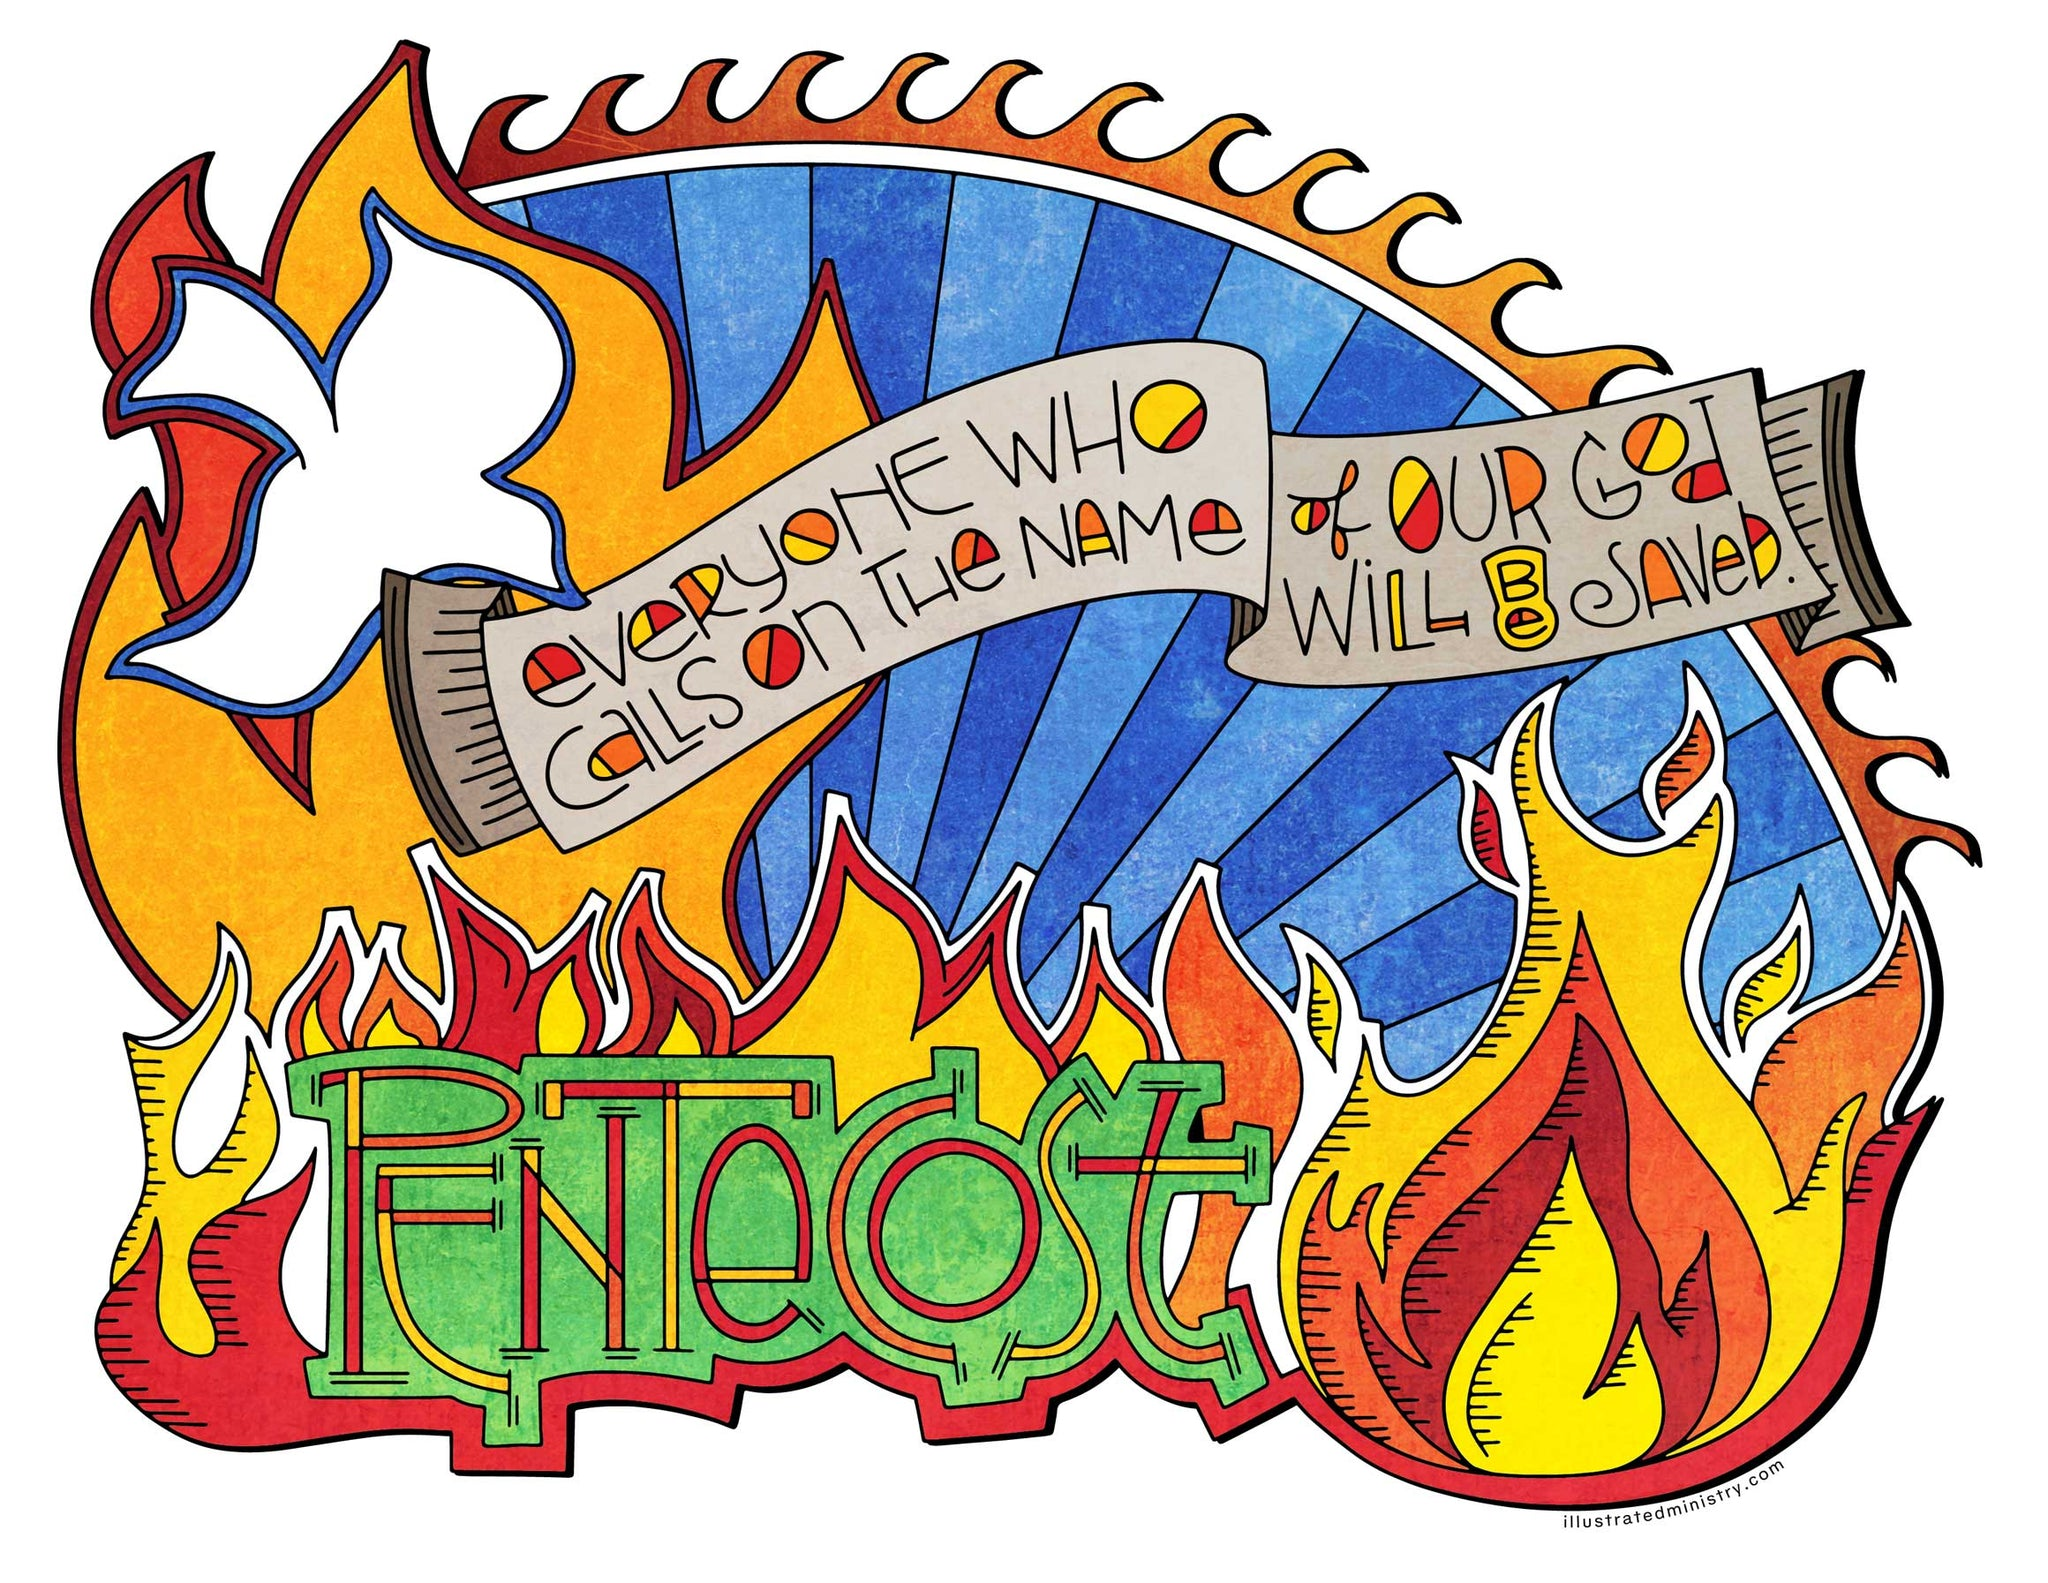 Pentecost Flames Coloring Page & Poster